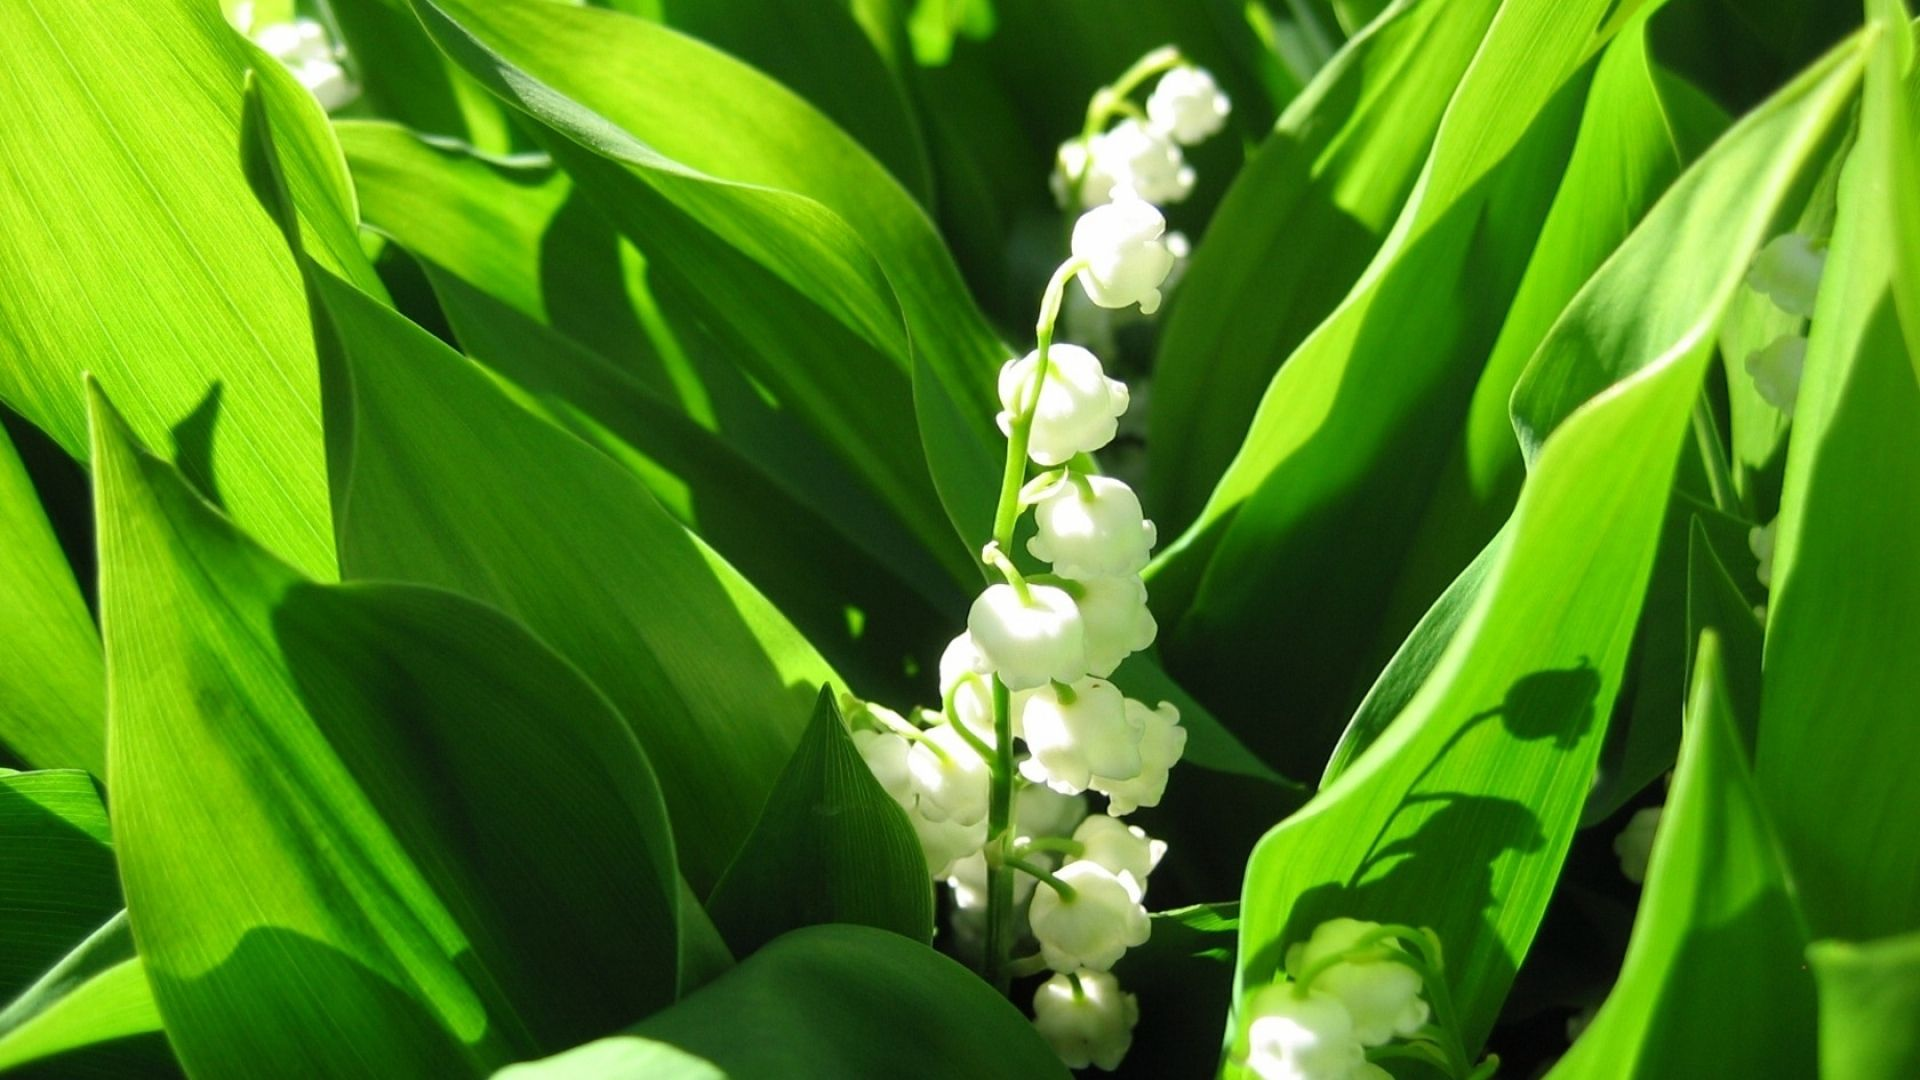 Lily Of The Valley High Quality